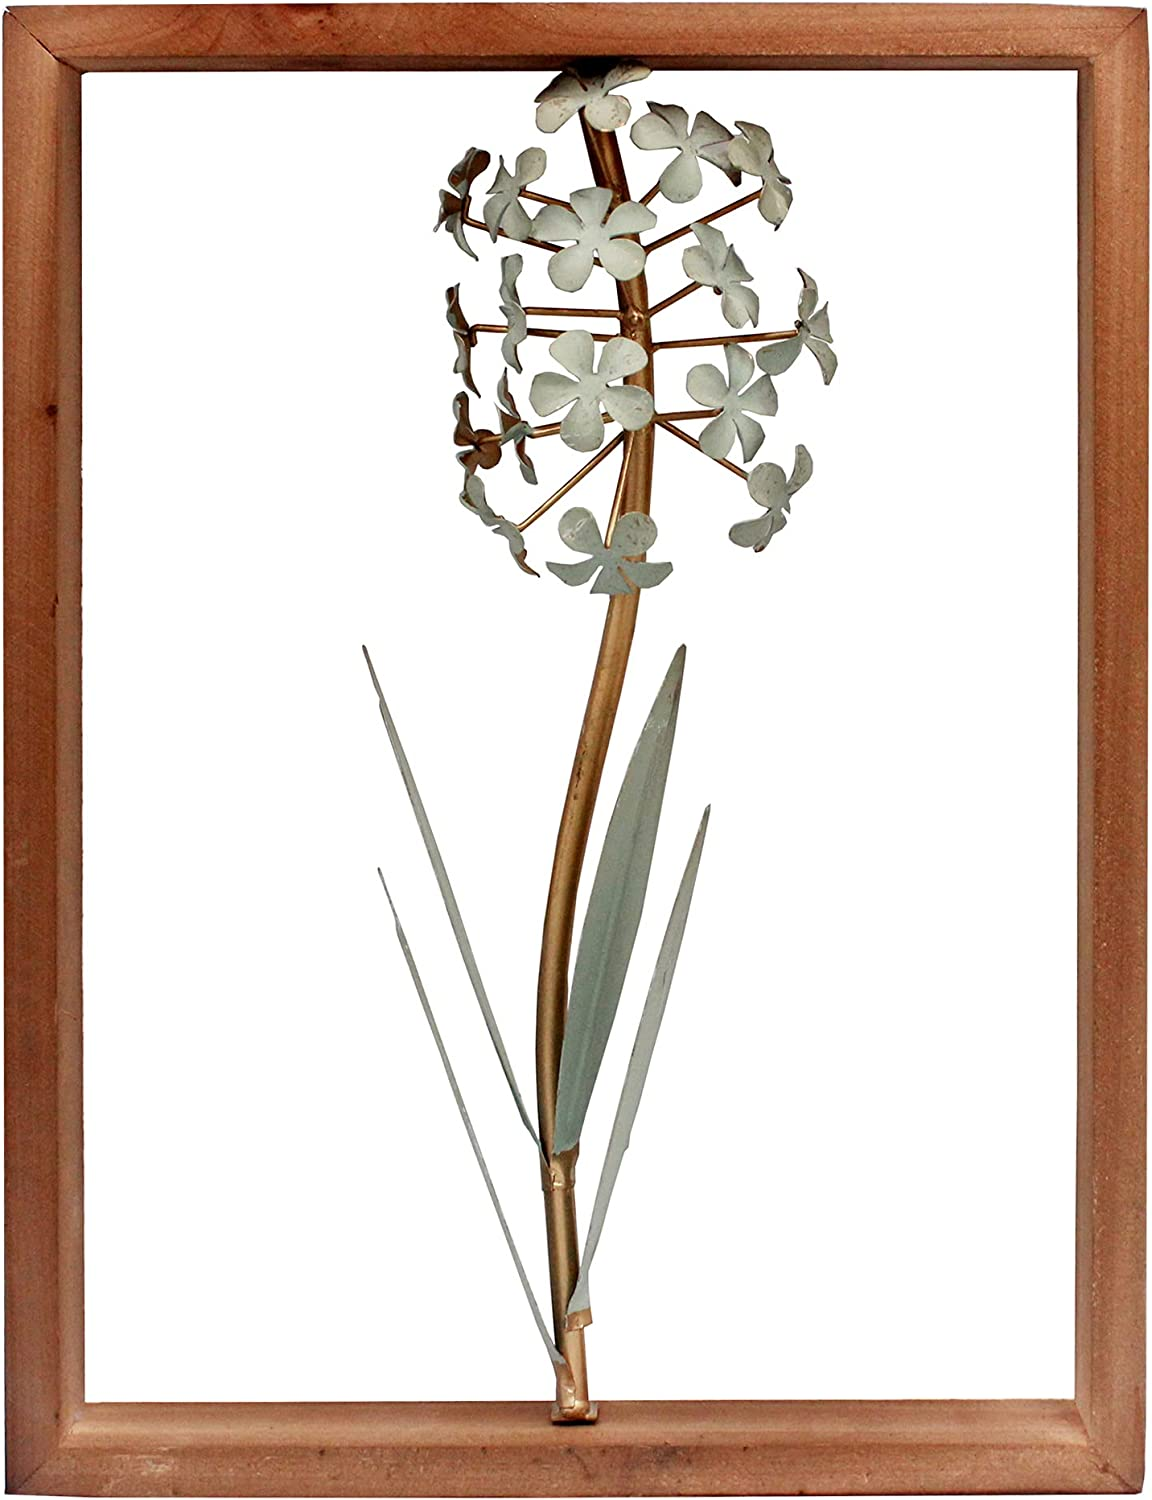 Funerom Metal Flower with Wood for Cheap mail order Max 85% OFF sales Wall Living Frame Decorations